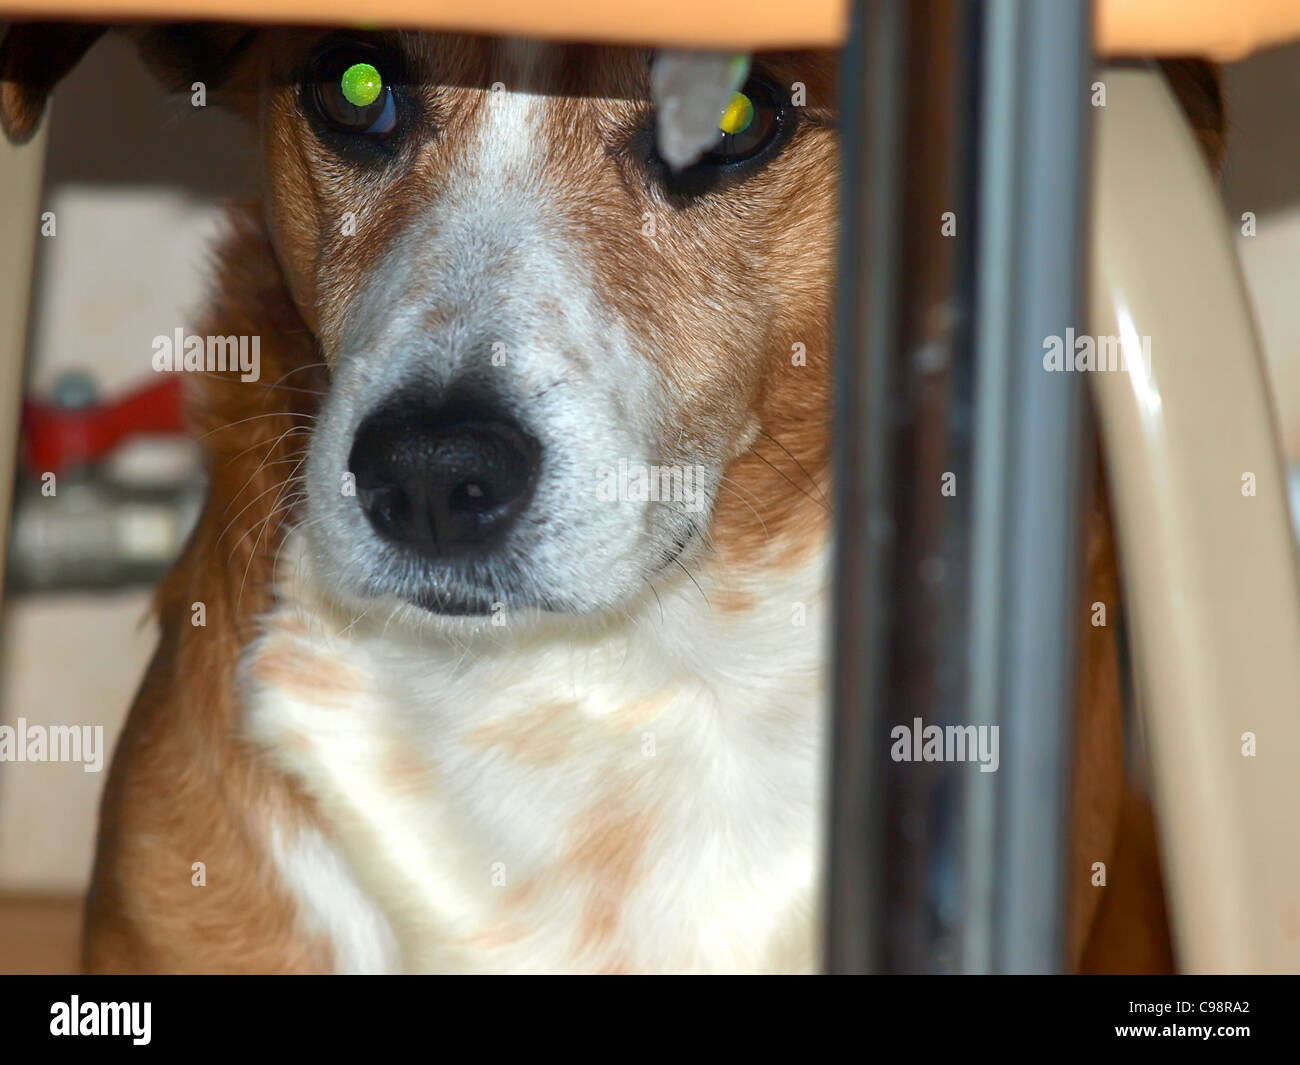 dog gazing out from under the stool in the kitchen - Stock Image